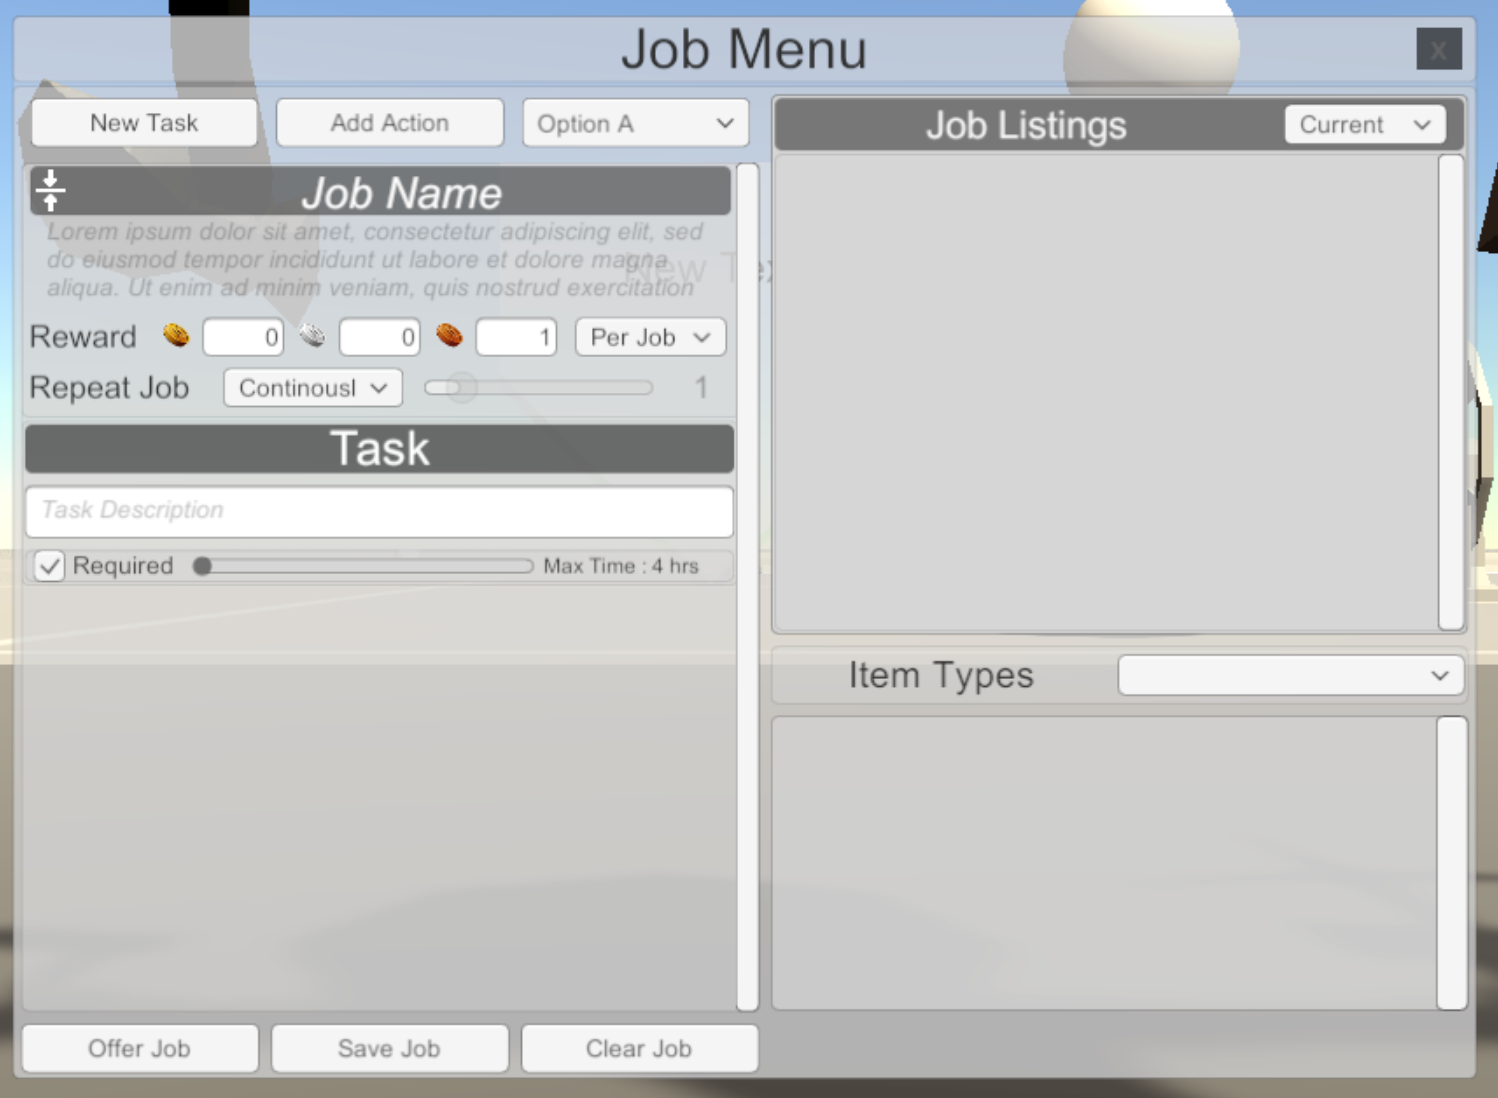 The ugly current state of the Job Menu